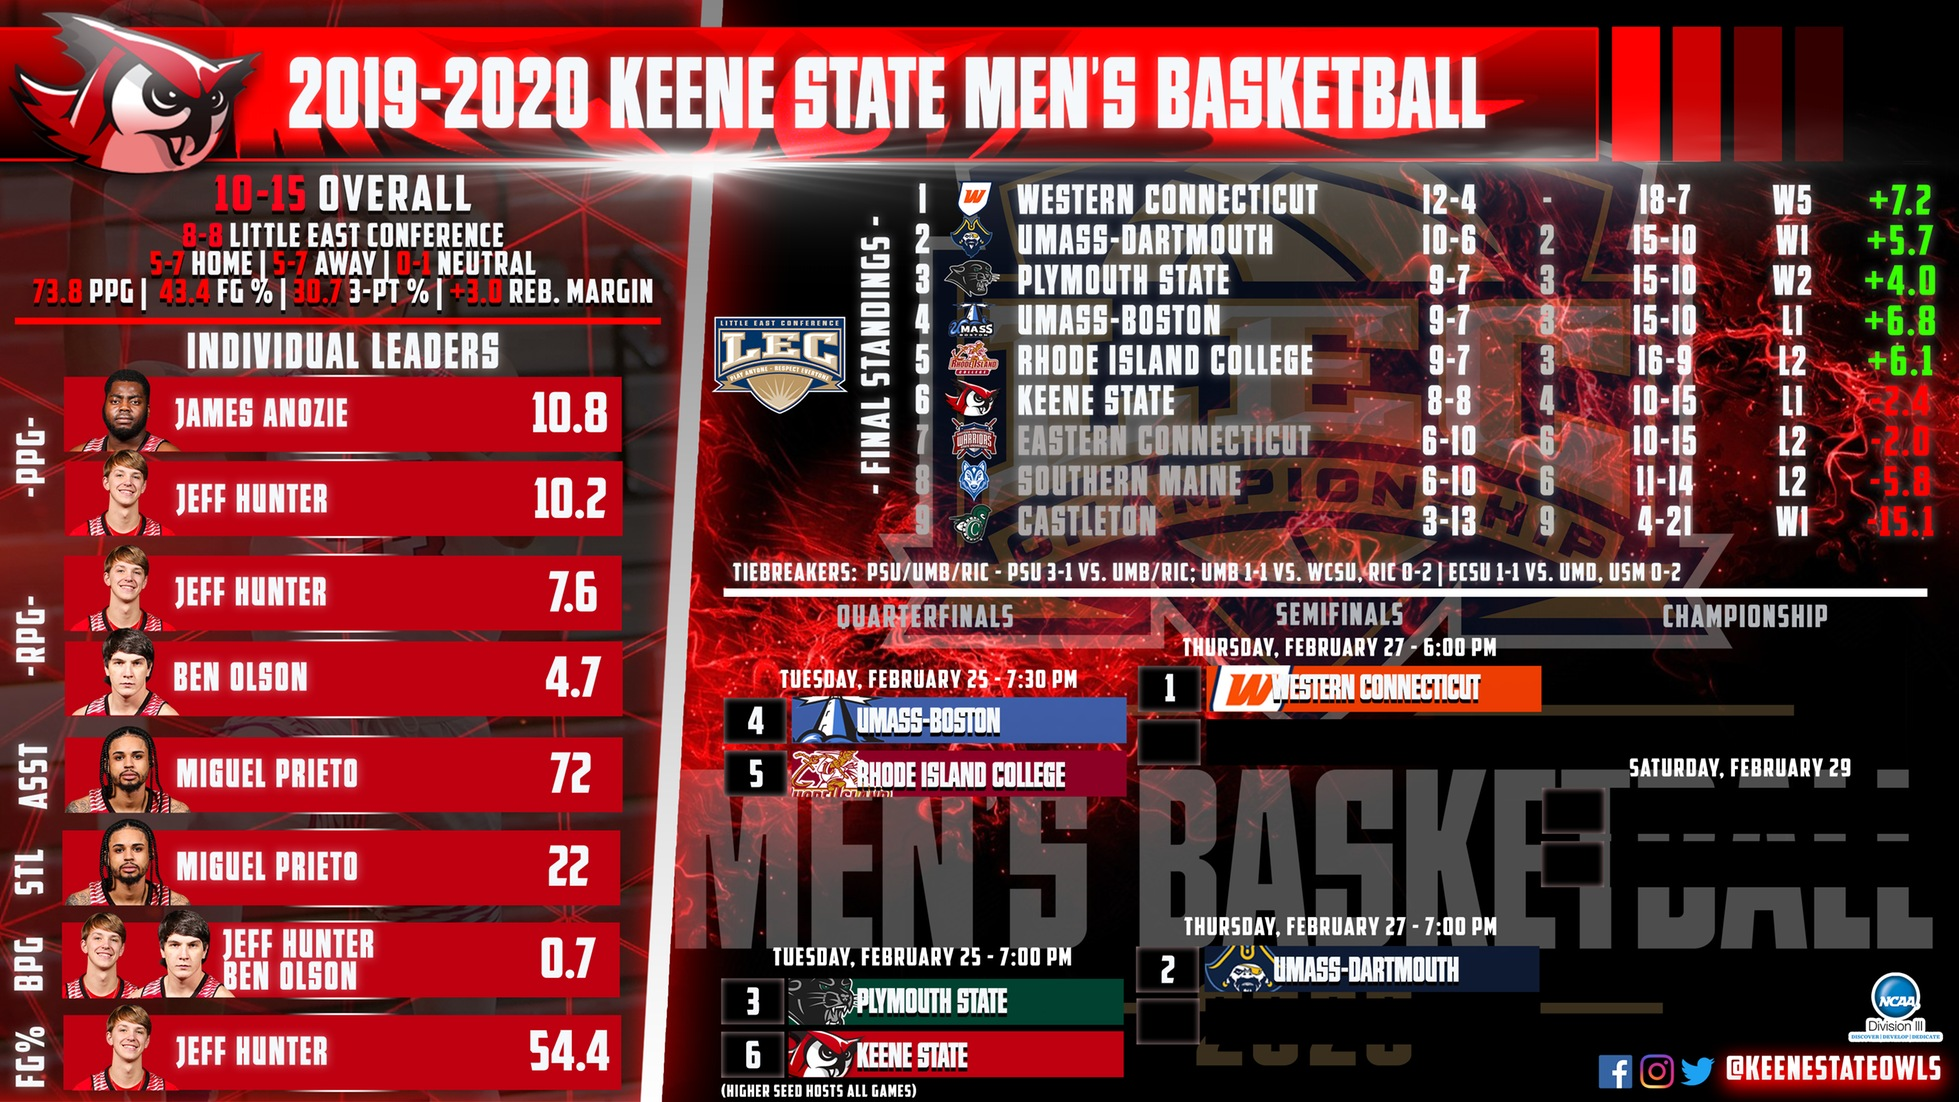 Keene State Men to Open Little East Postseason With Third Meeting Against Plymouth State